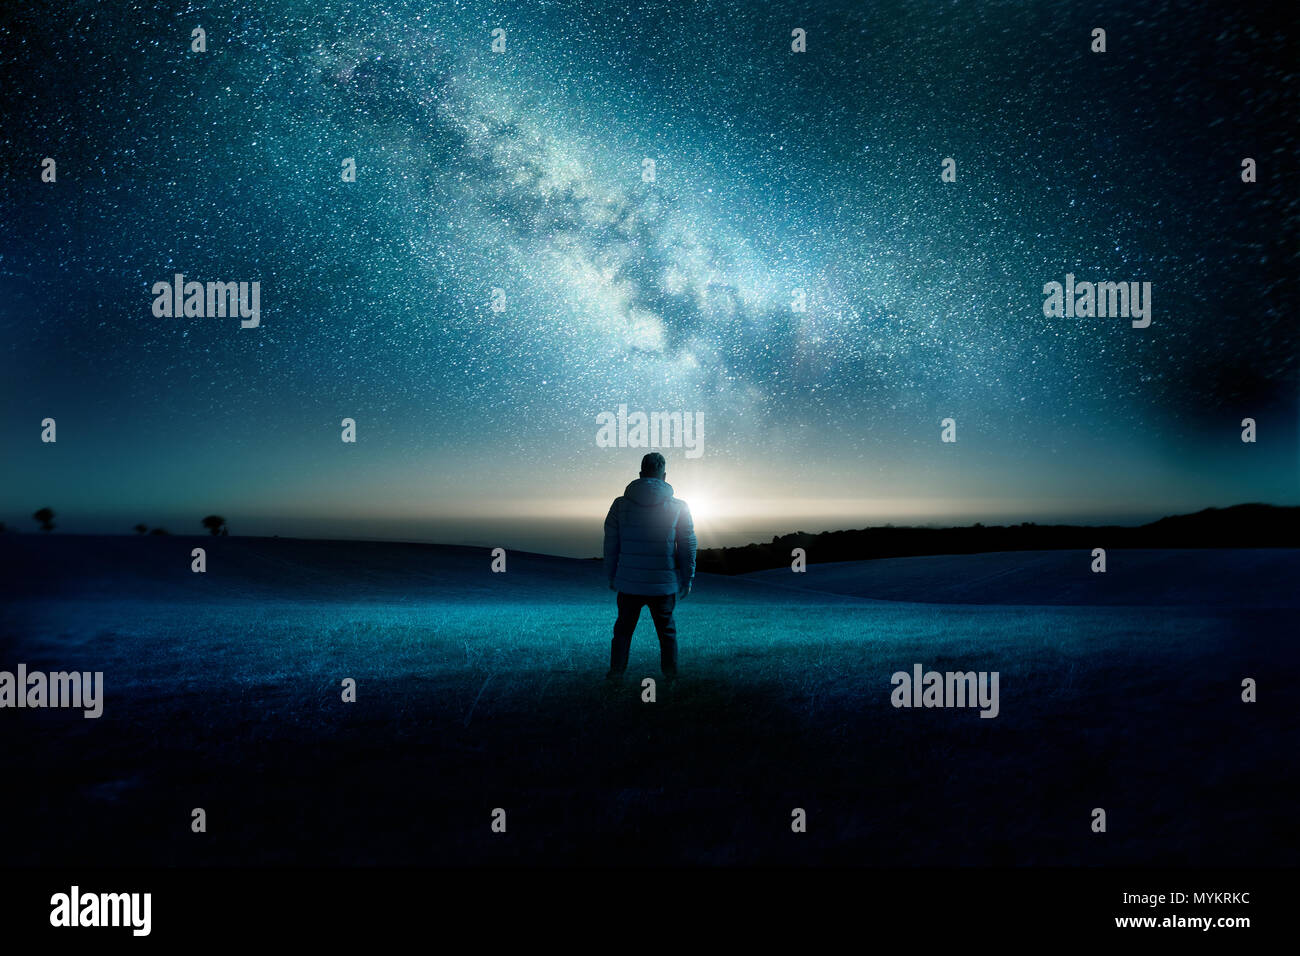 A man stands watching with wonder and amazement as the moon and milky way galaxy fill the night sky. Night time landscape. Photo composite. - Stock Image